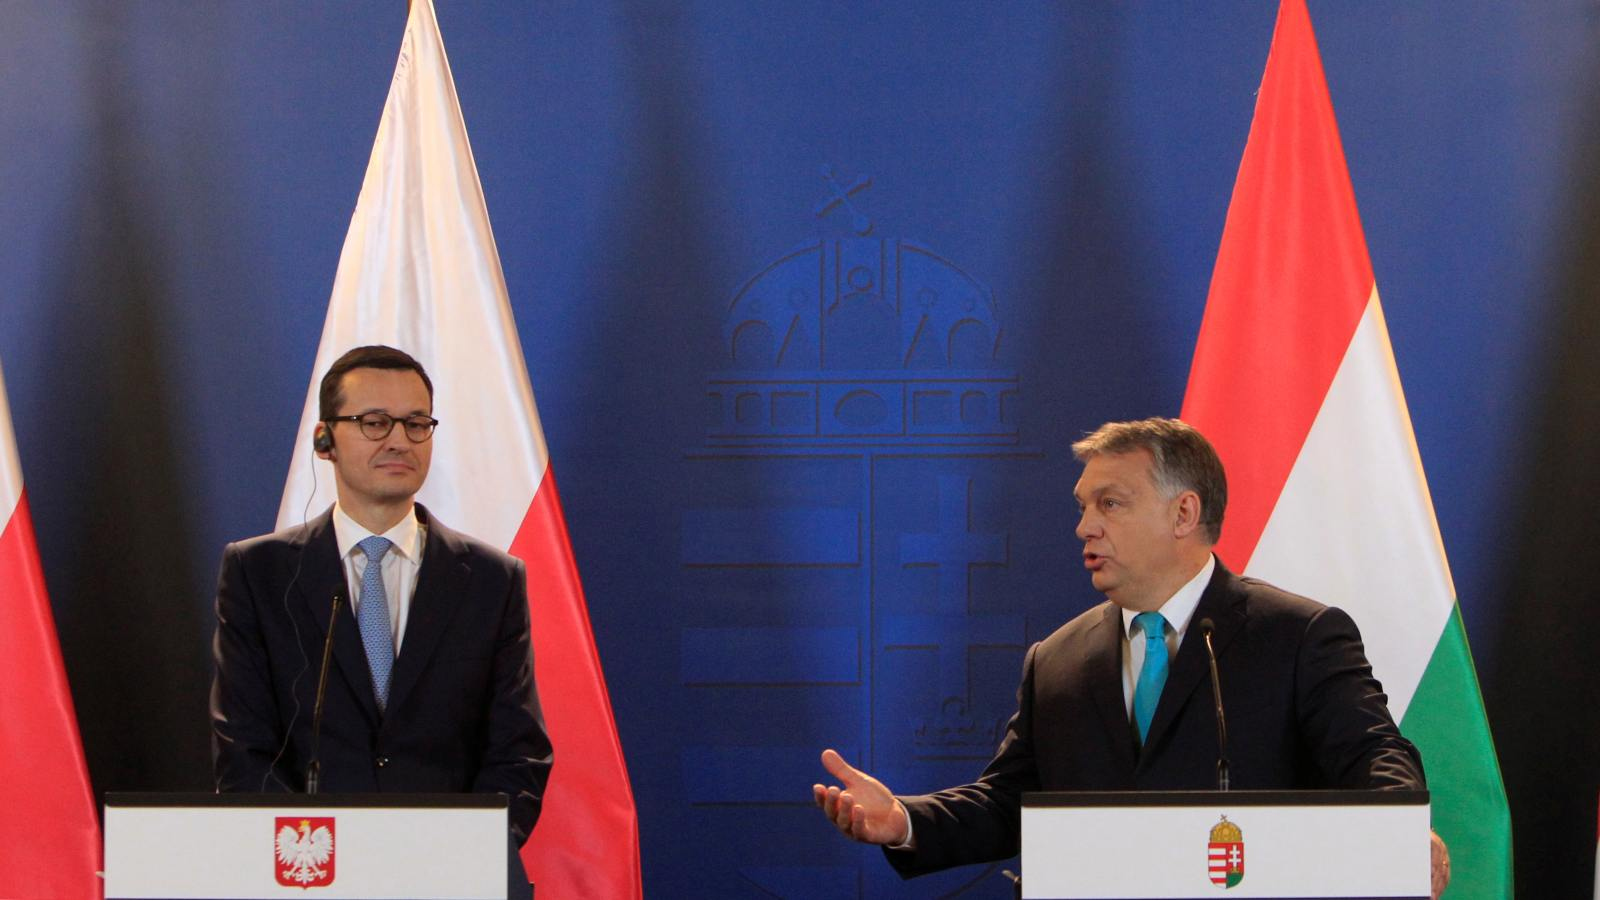 Polish Prime Minister Mateusz Morawiecki and Hungarian Prime Minister Viktor Orban hold a joint news conference in Budapest, Hungary January 3, 2018. REUTERS/Bernadett Szabo